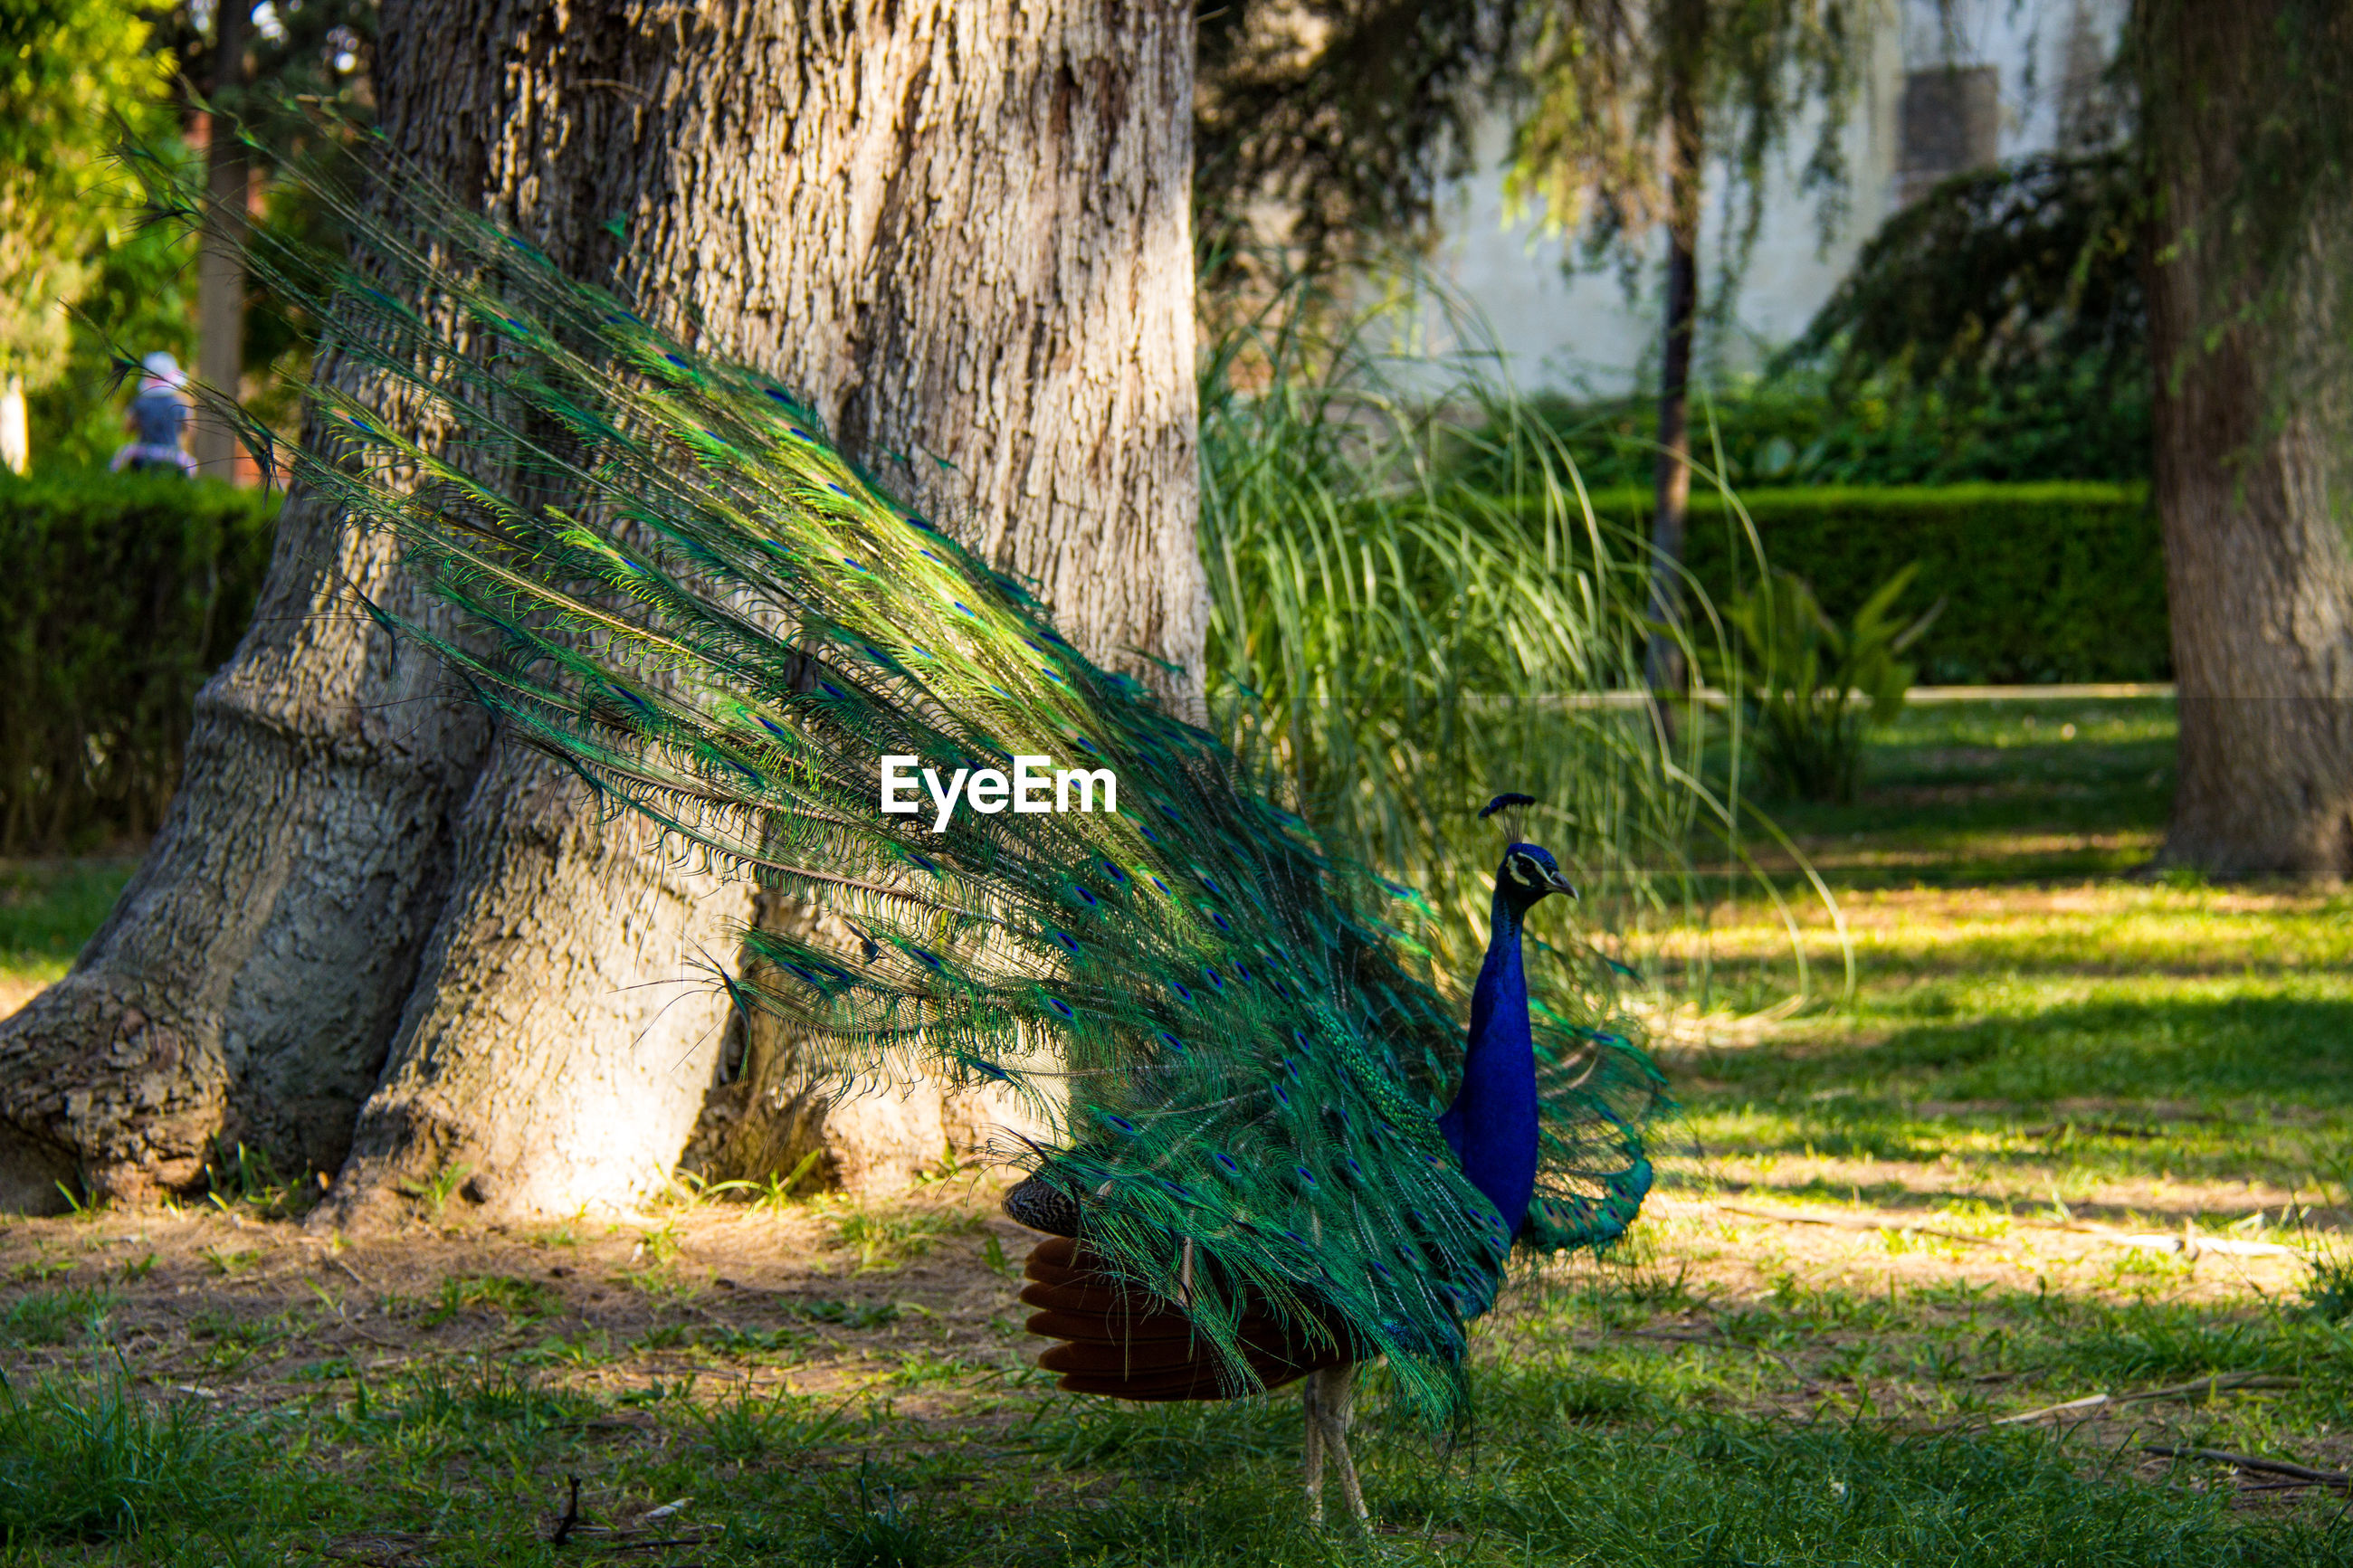 View of peacock against tree trunk